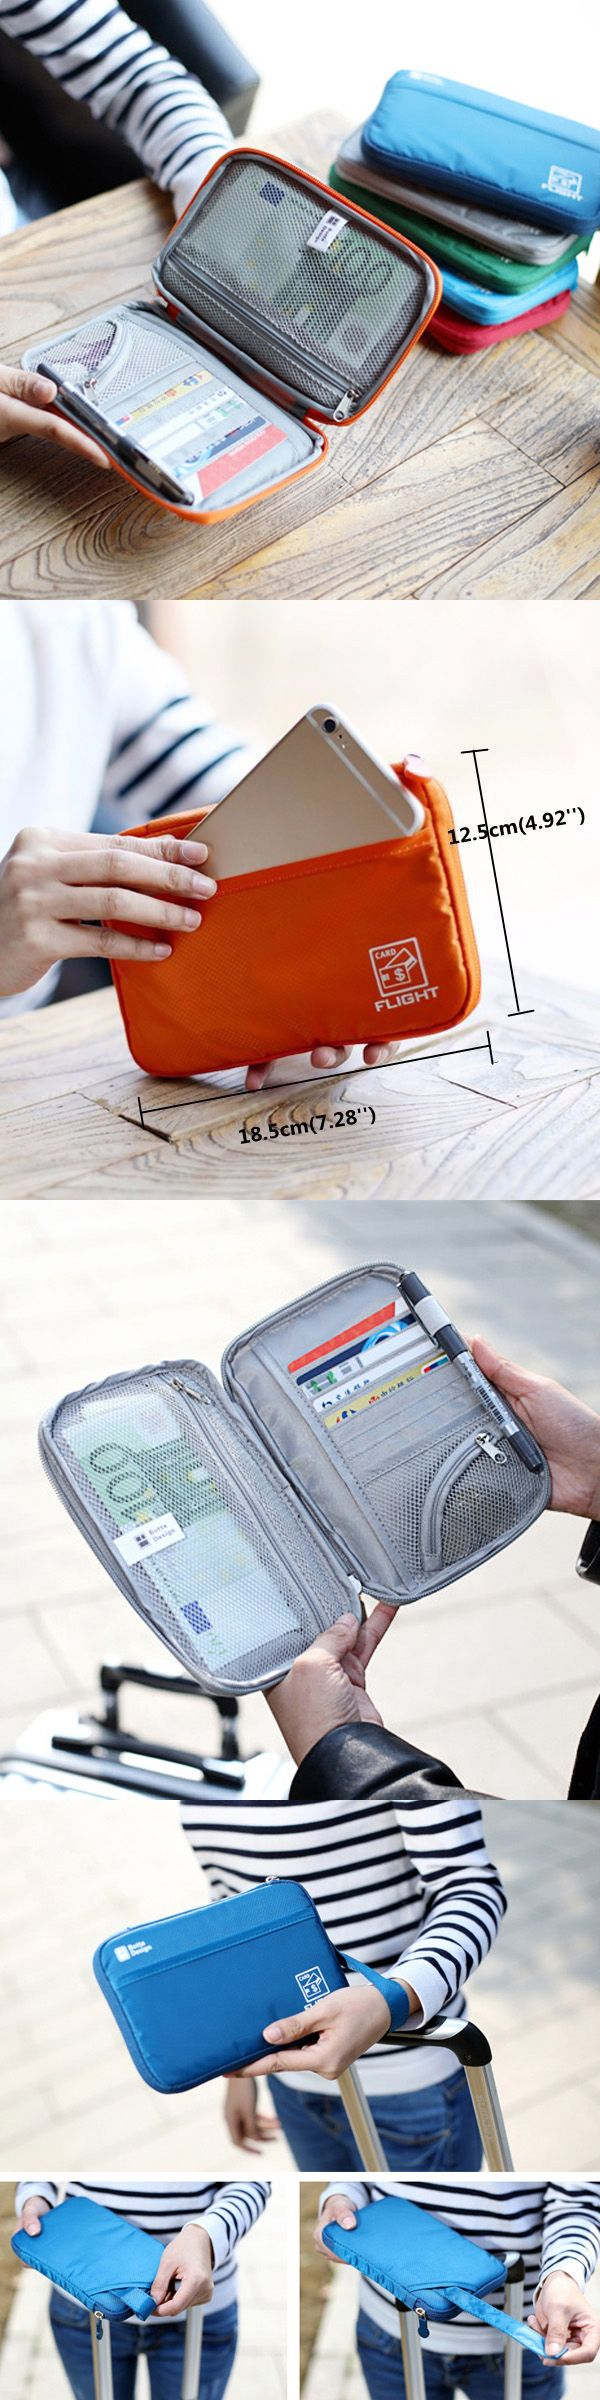 US$8.57 Nylon Multifunction Passport Wallet Purse _Cosmetic Bag_ Travel Storage Bag